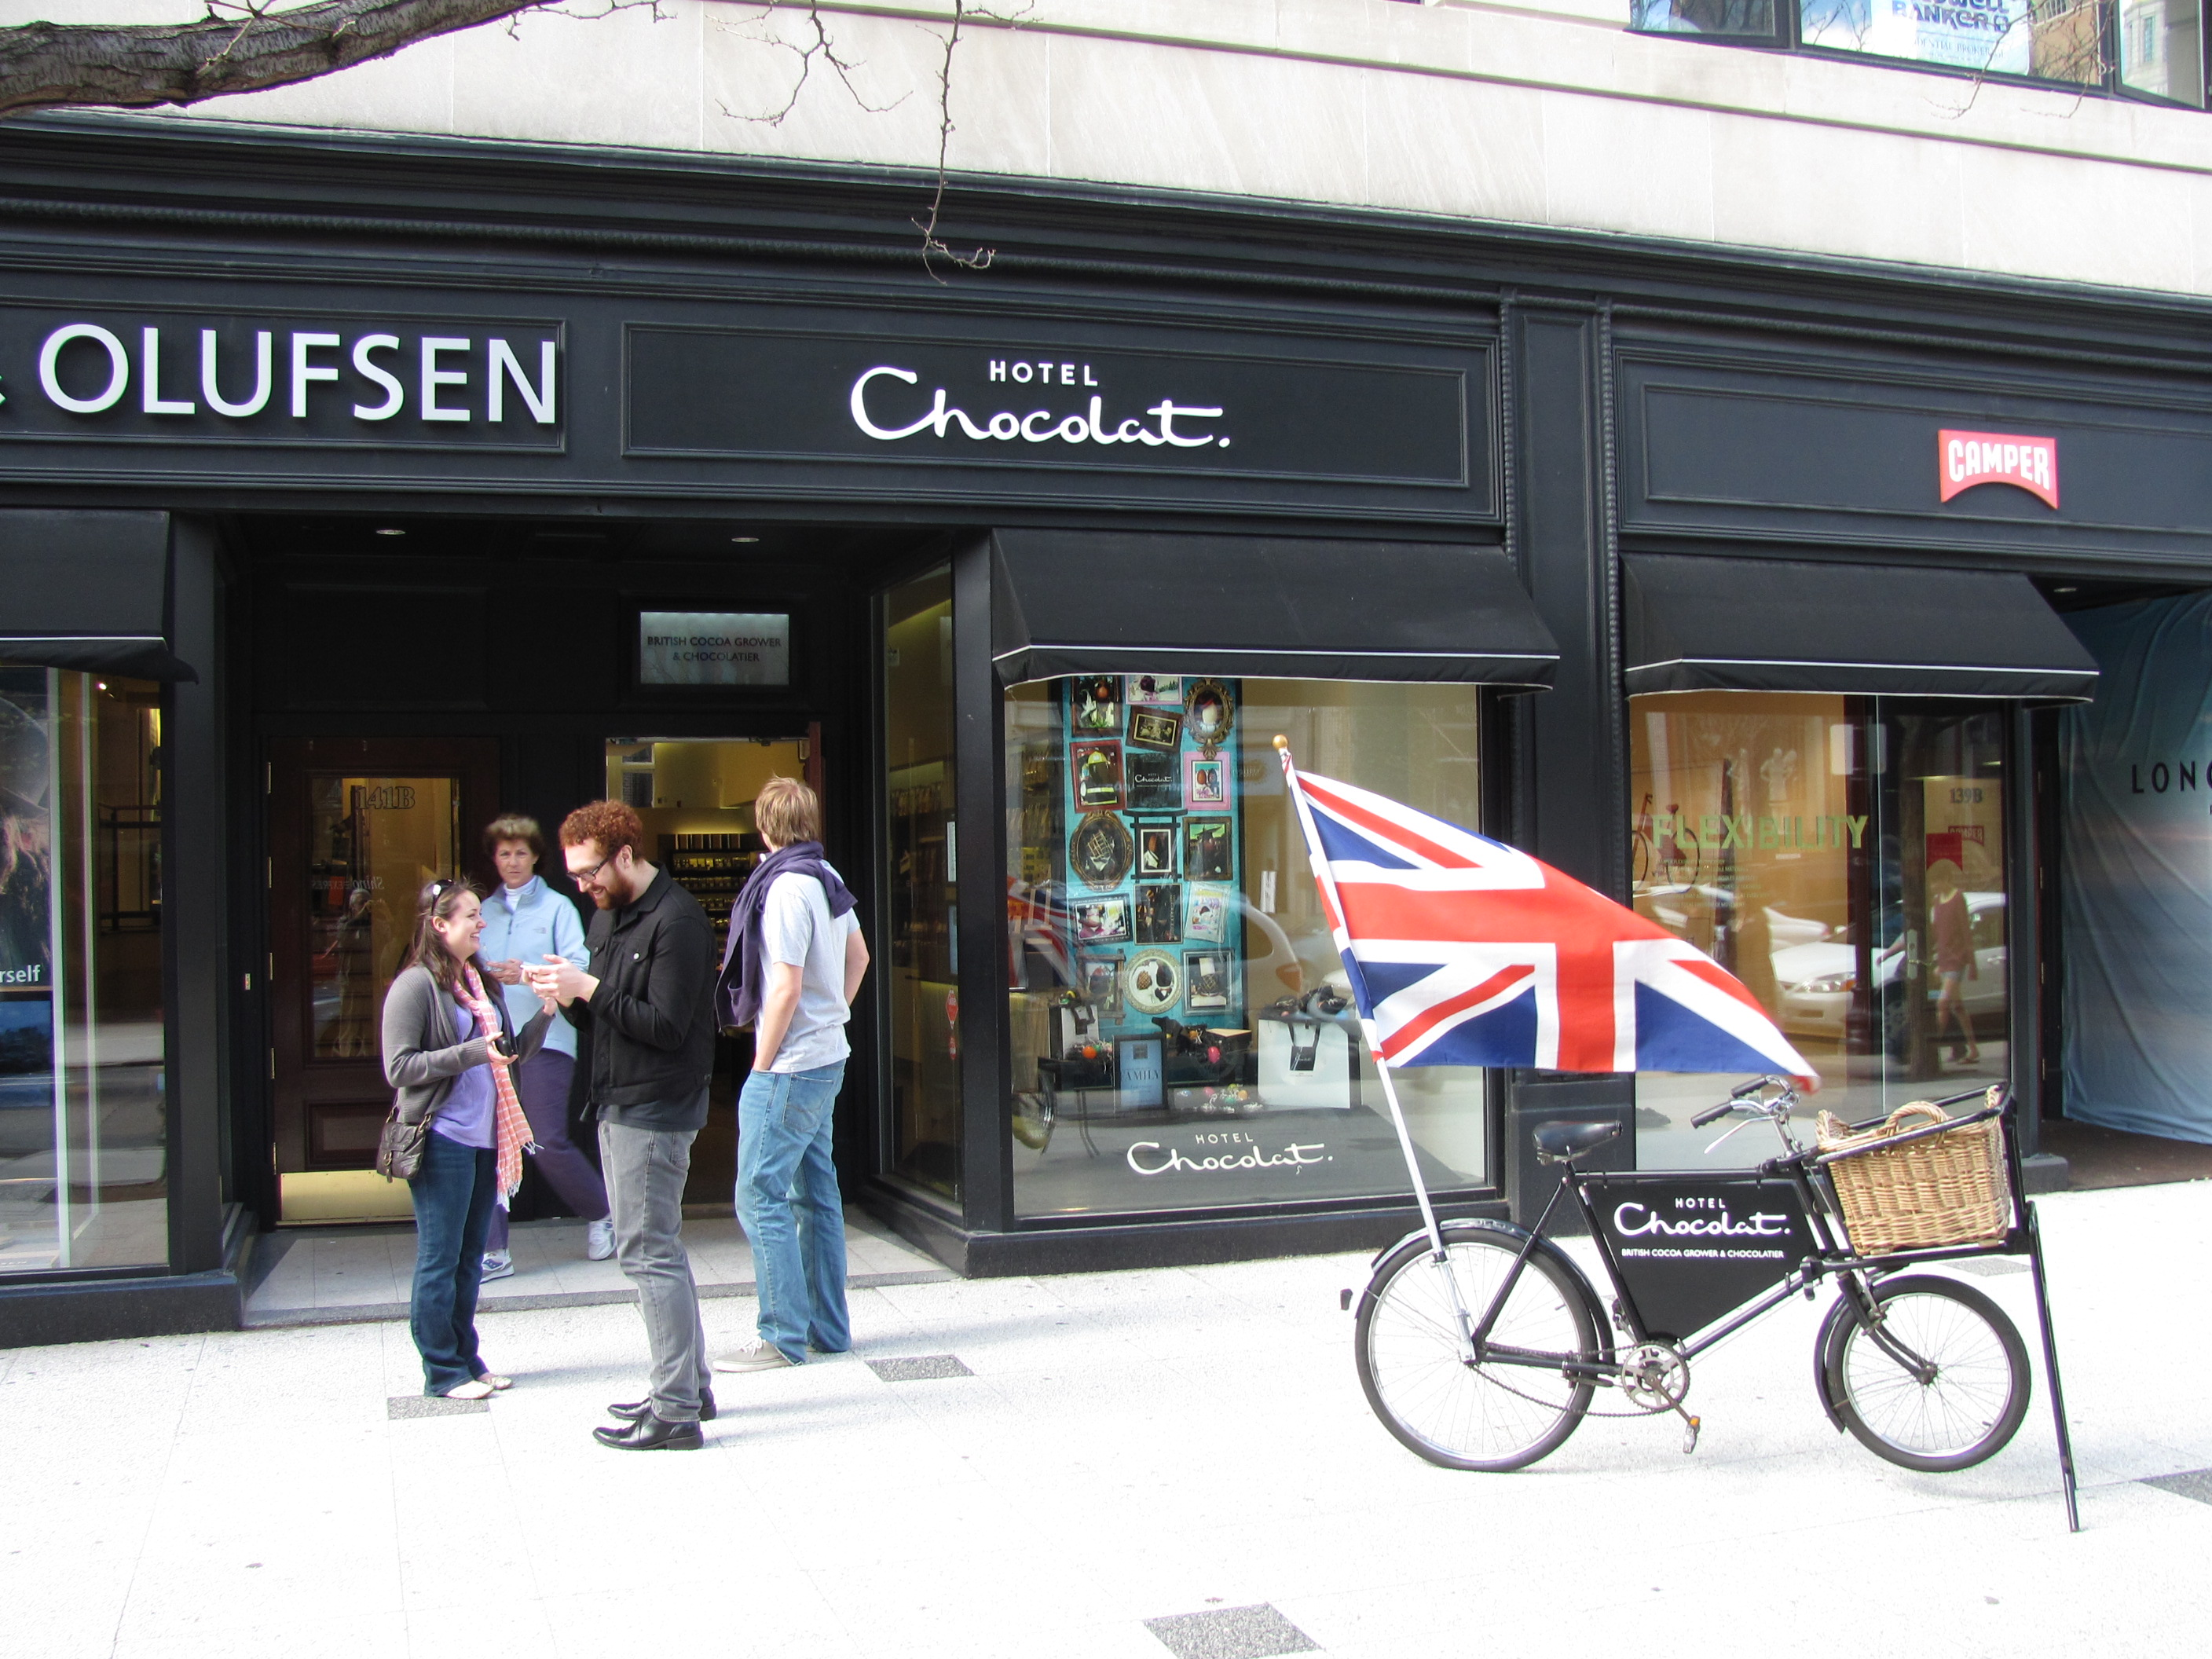 File:Hotel Chocolat, Boston MA.jpg